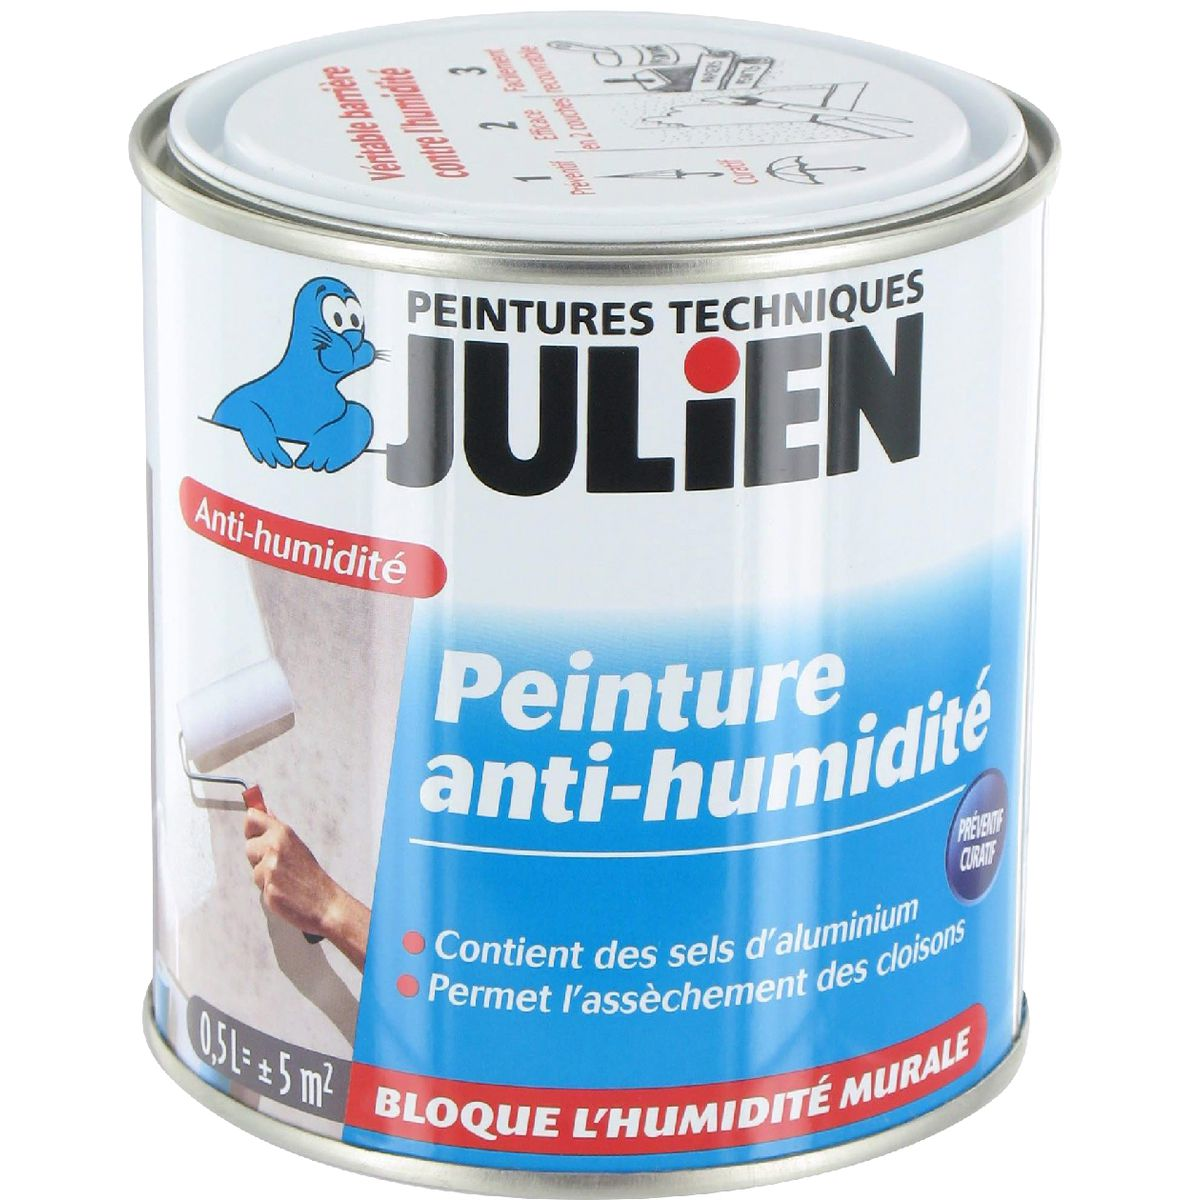 Peinture anti humidite v33 photos de conception de for Peinture anti humidite